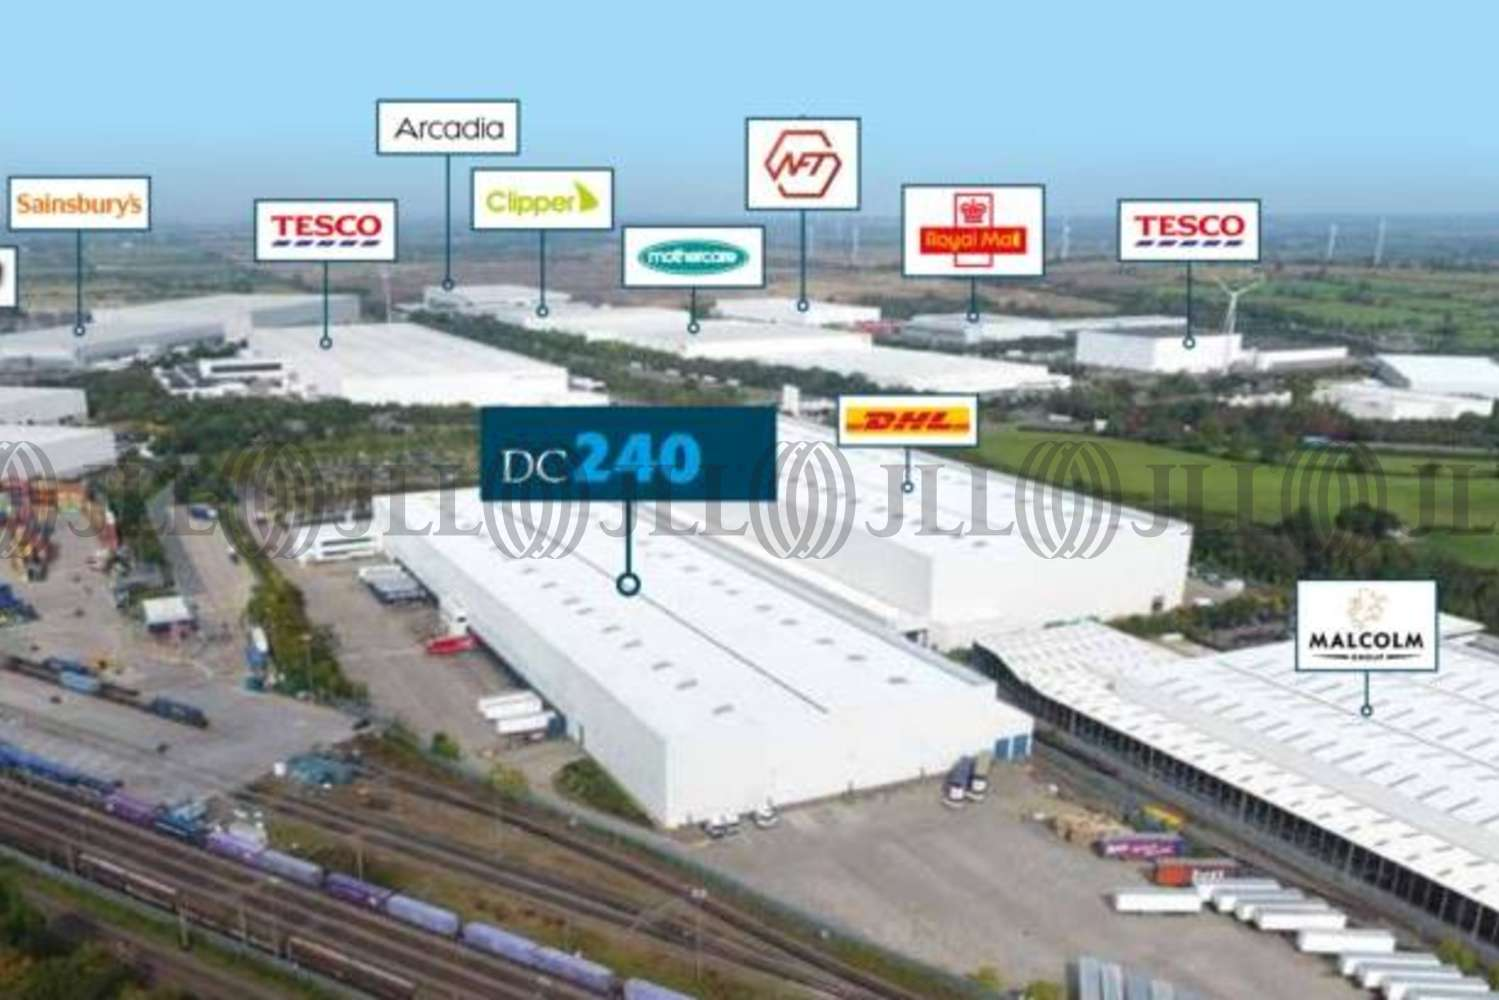 Industrial Daventry, NN6 7FT - DC240 Prologis RFI DIRFT - 3